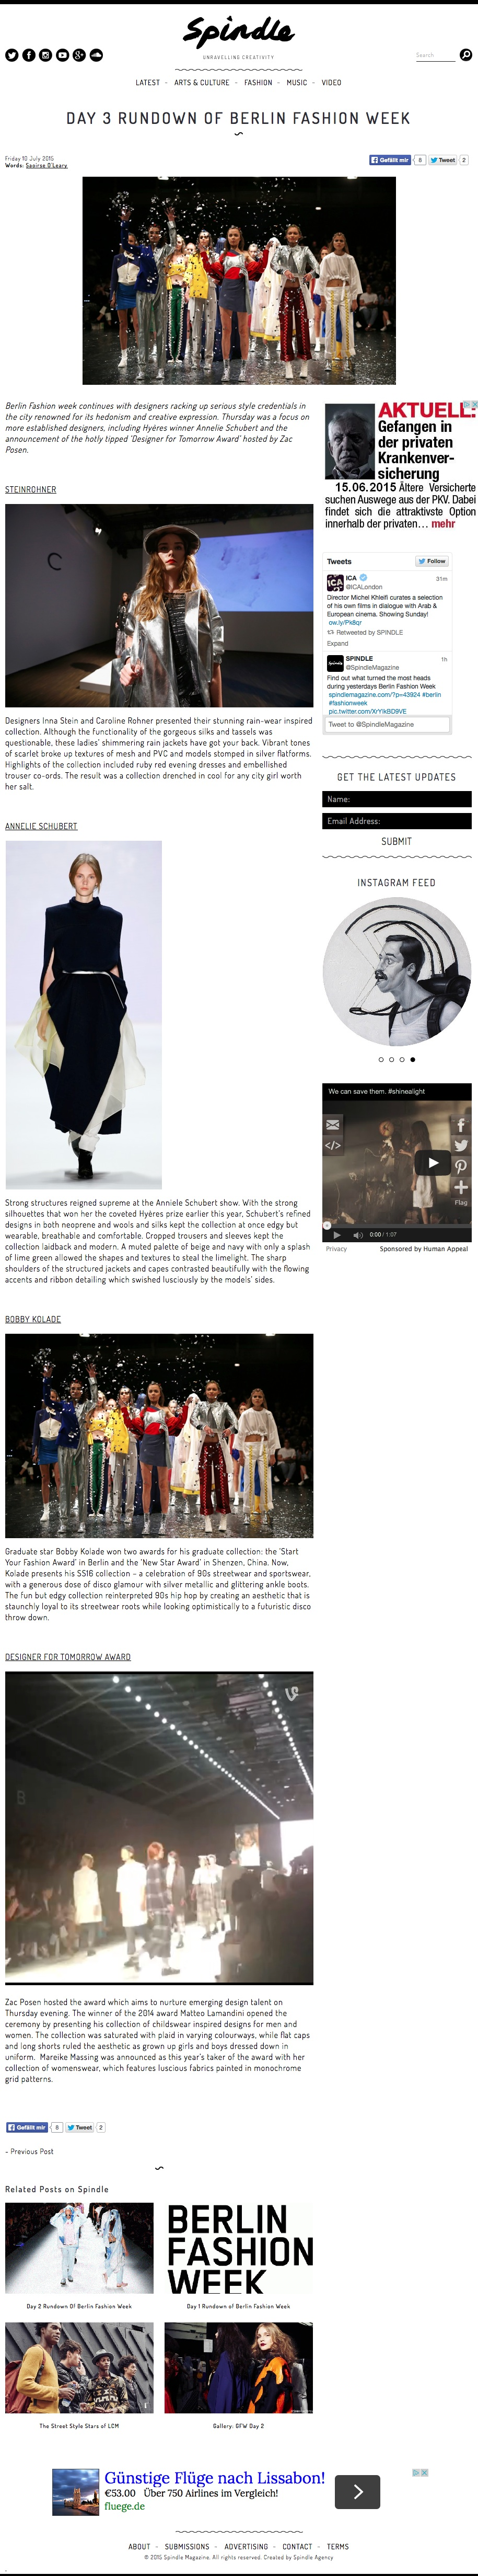 spindlemagazine.com_2015_07_day-3-rundown-berlin-fashion-week_.jpg